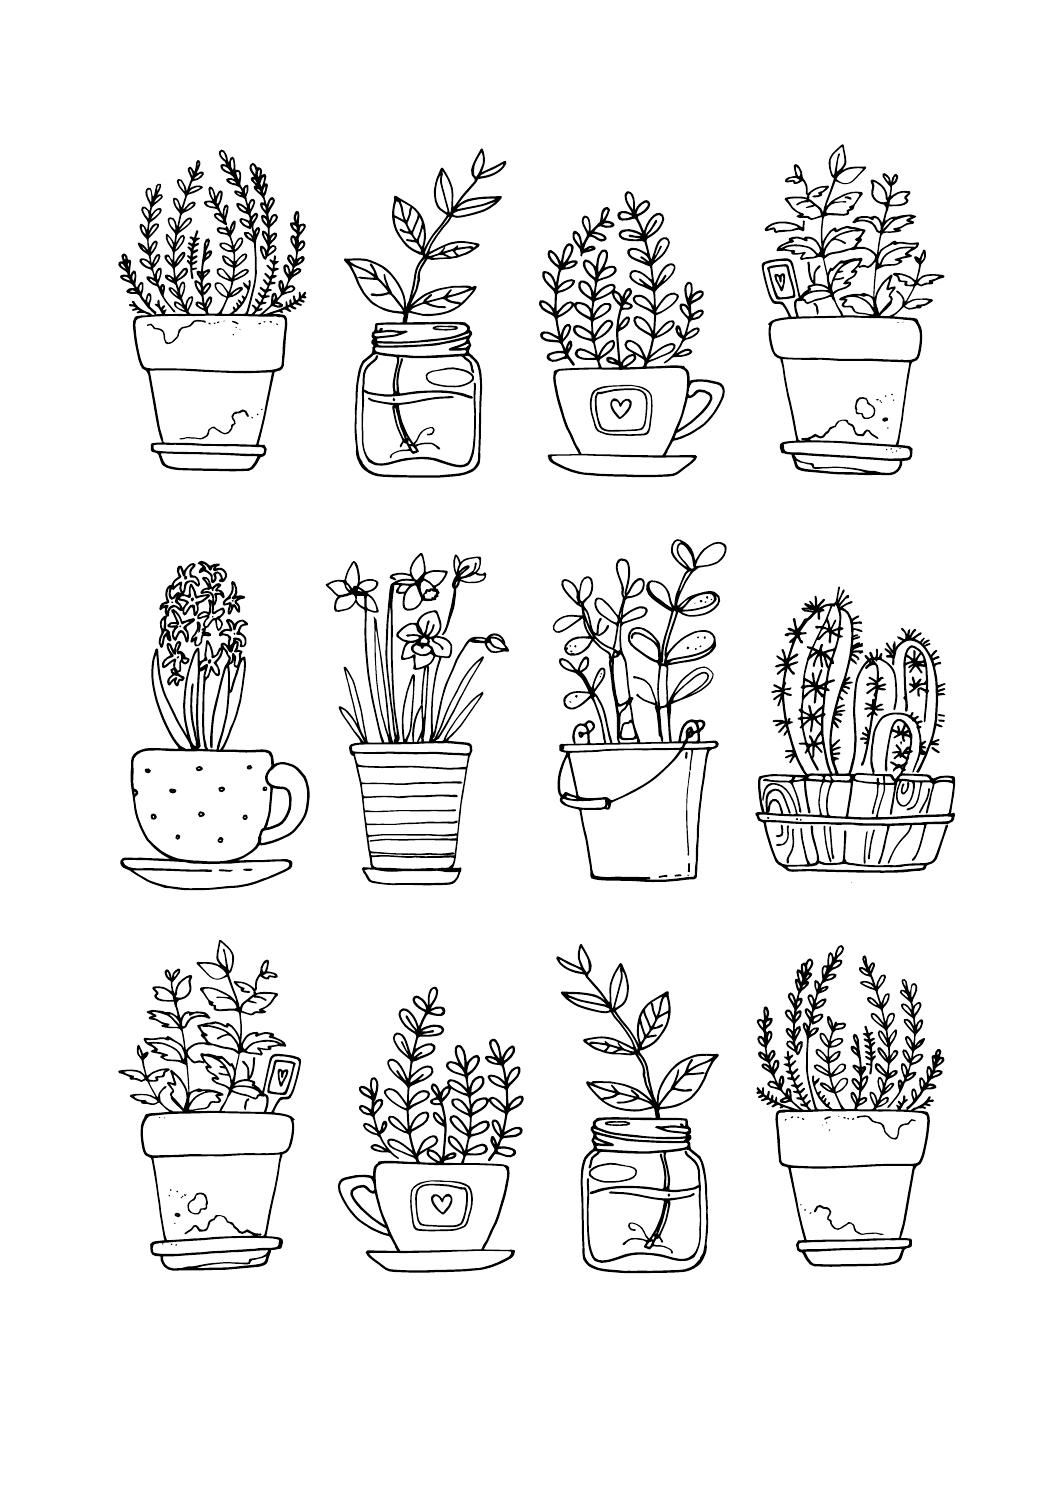 coloring sheet for plant lovers plants doodles and bullet